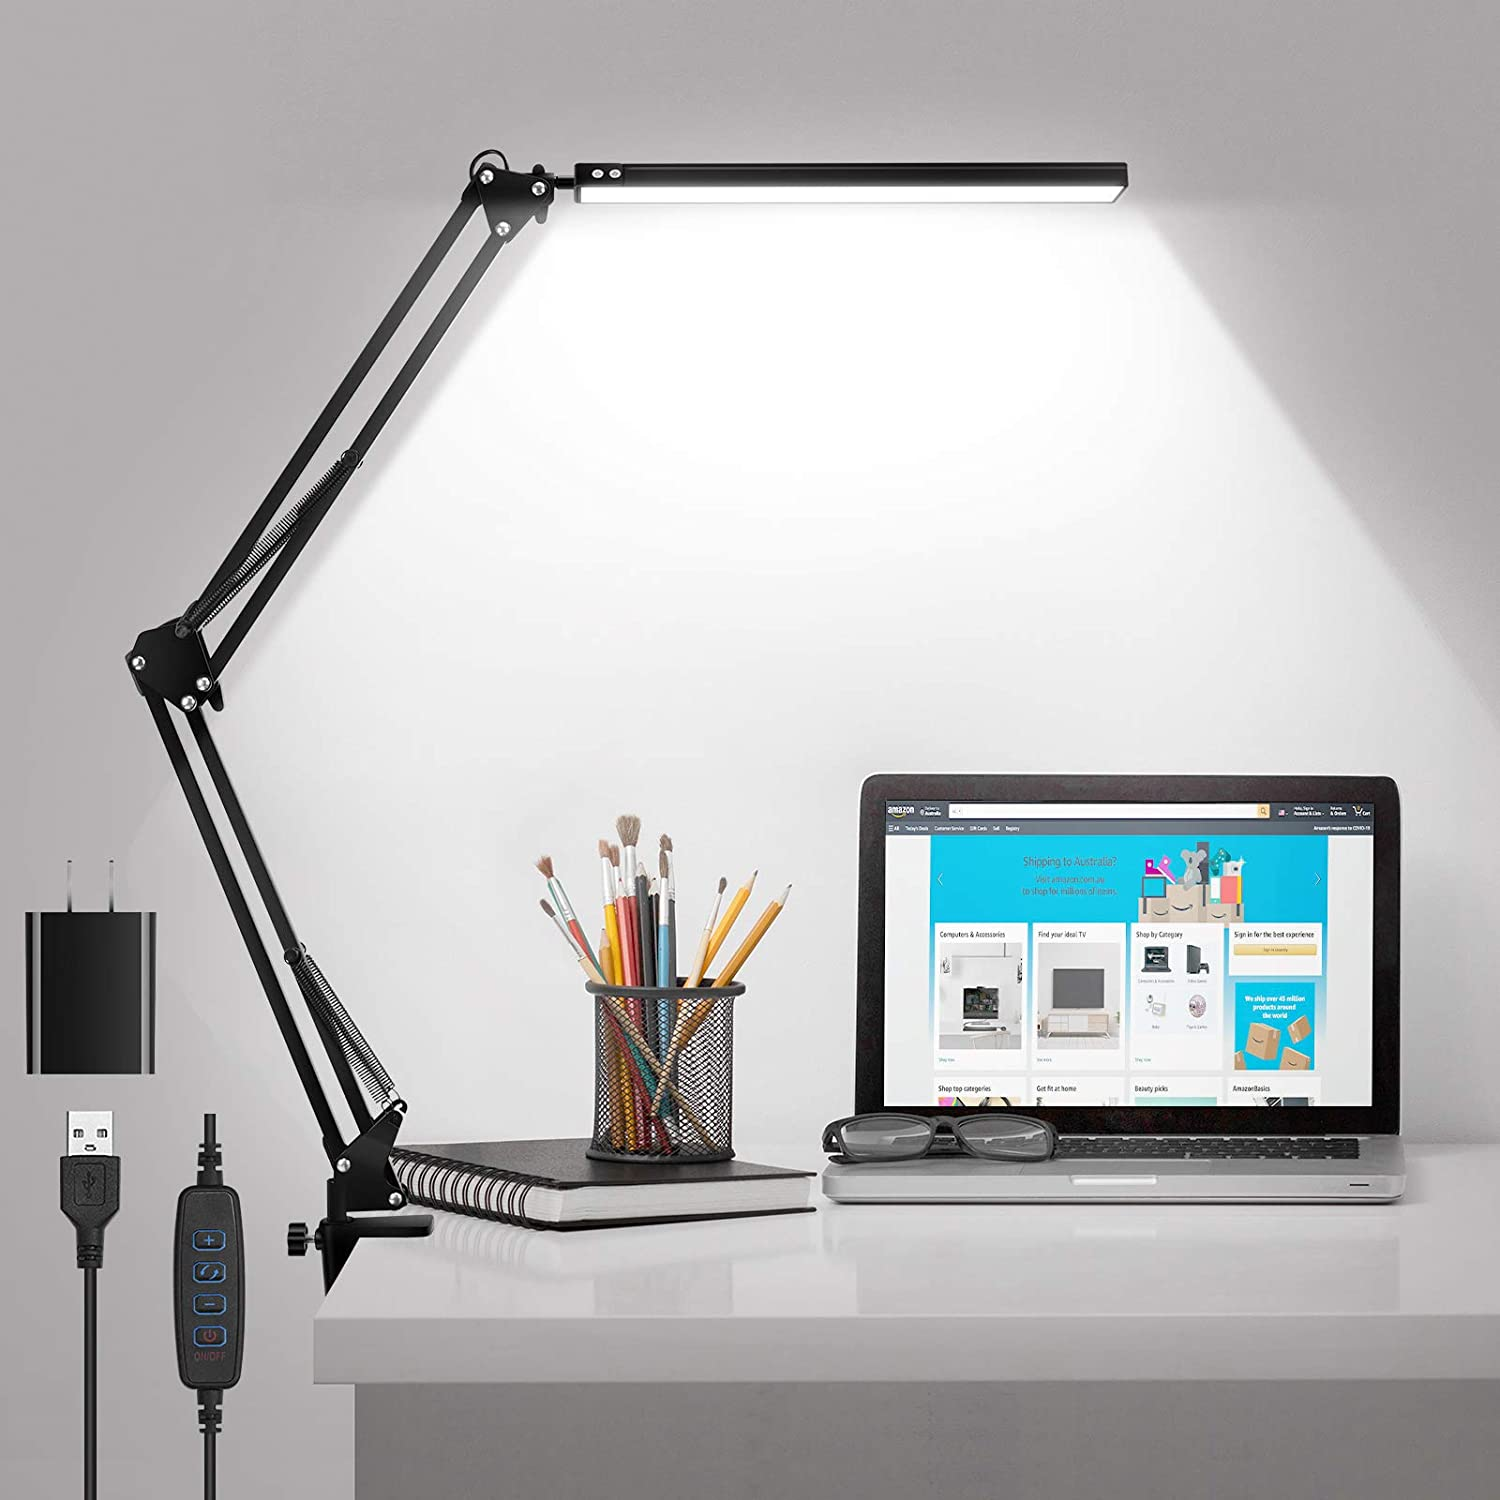 LED Desk Lamp with Clamp, Metal Swing Arm Desk Lamps for Home Office, Eye-Caring & Dimming Desk Light with 3 Colors Modes, 10 Brightness Levels & Adapter Included, Memory Function 10W (Black)